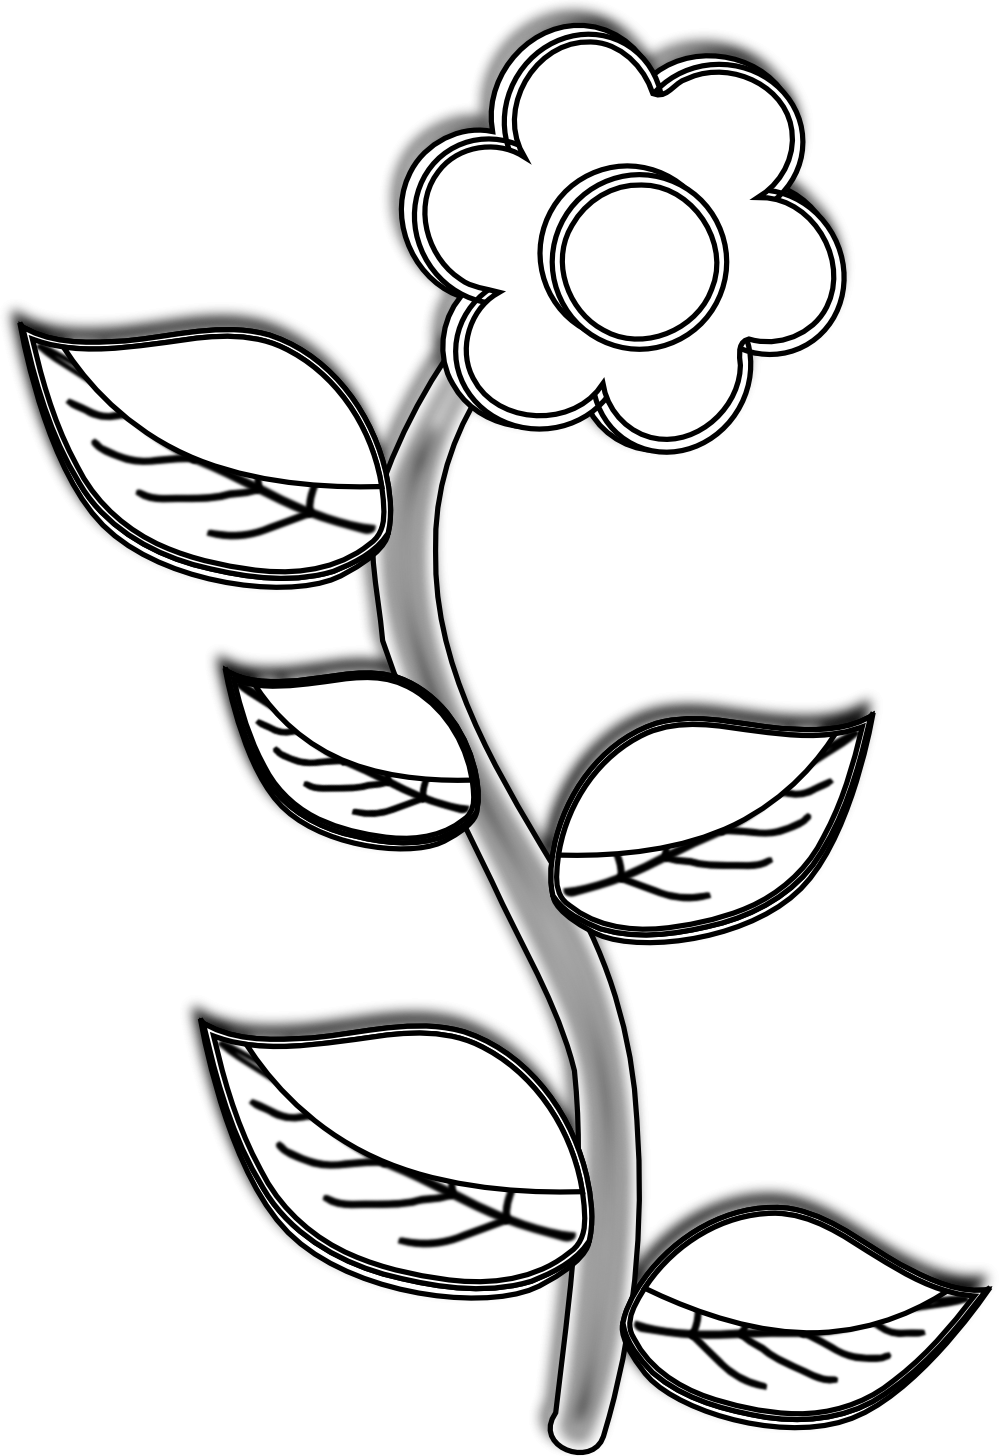 Sun Flower Clipart Black And White | Free download best Sun